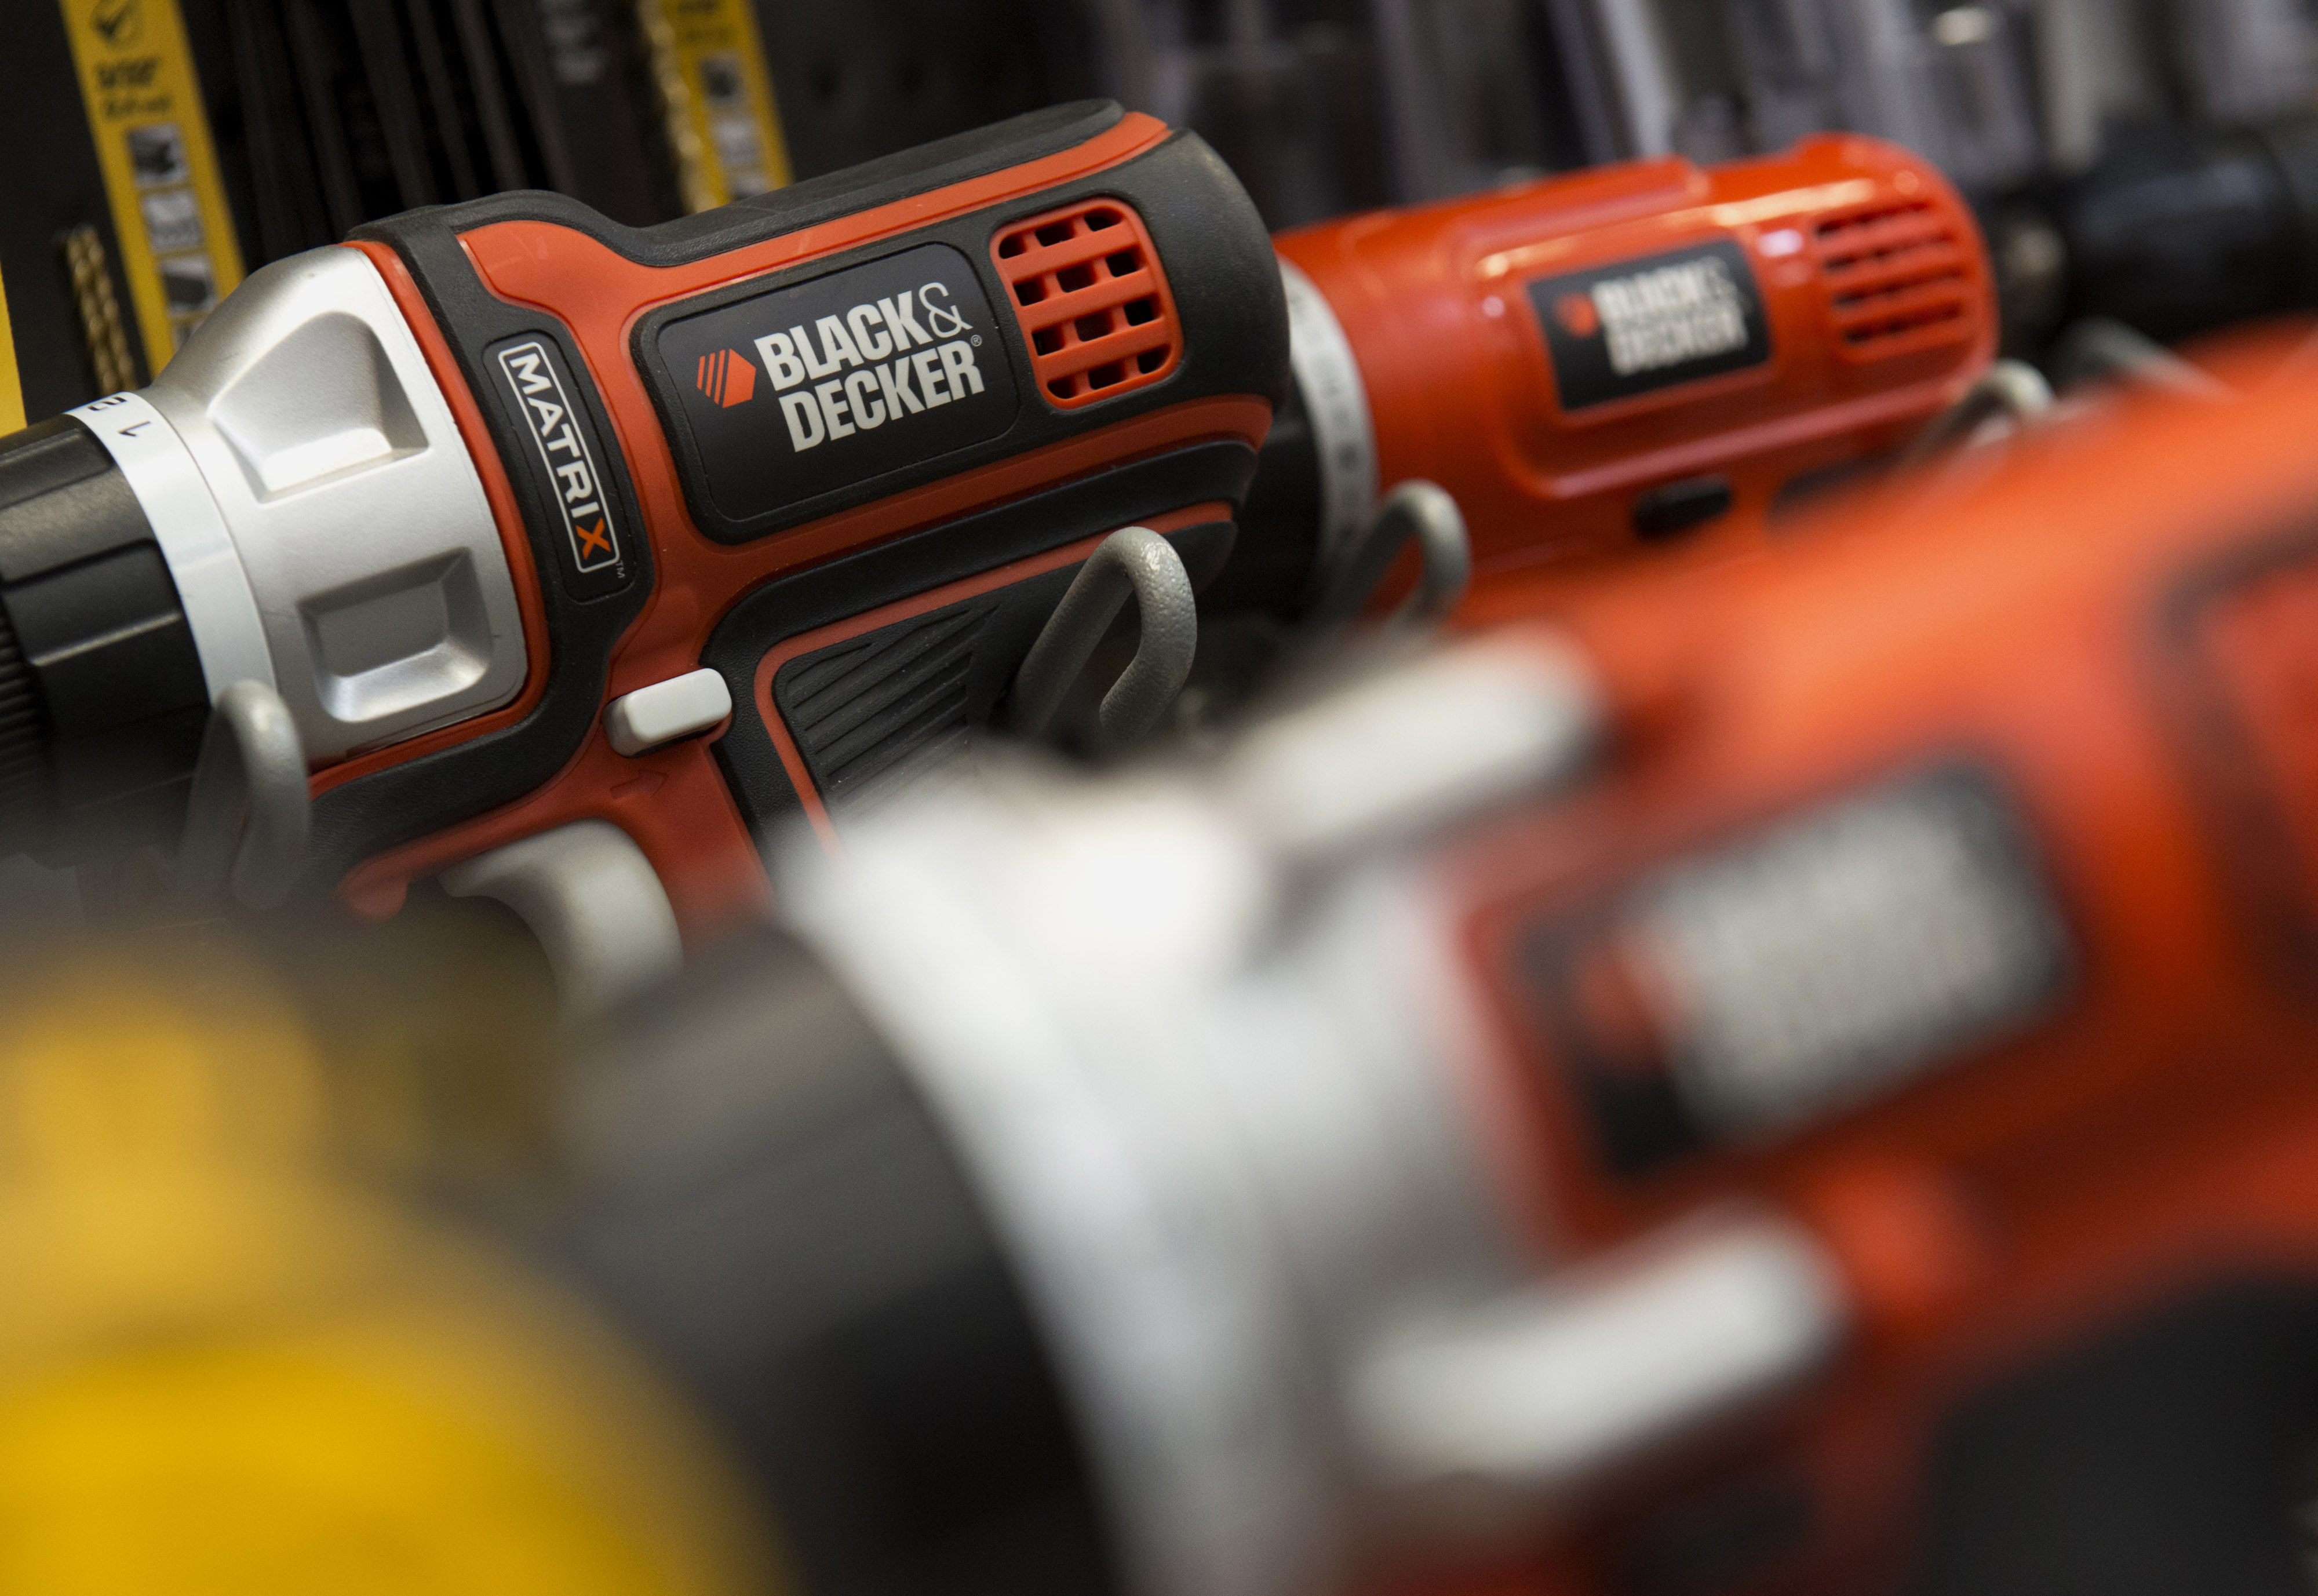 Stanley Black & Decker Products Ahead Of Earnings Figures